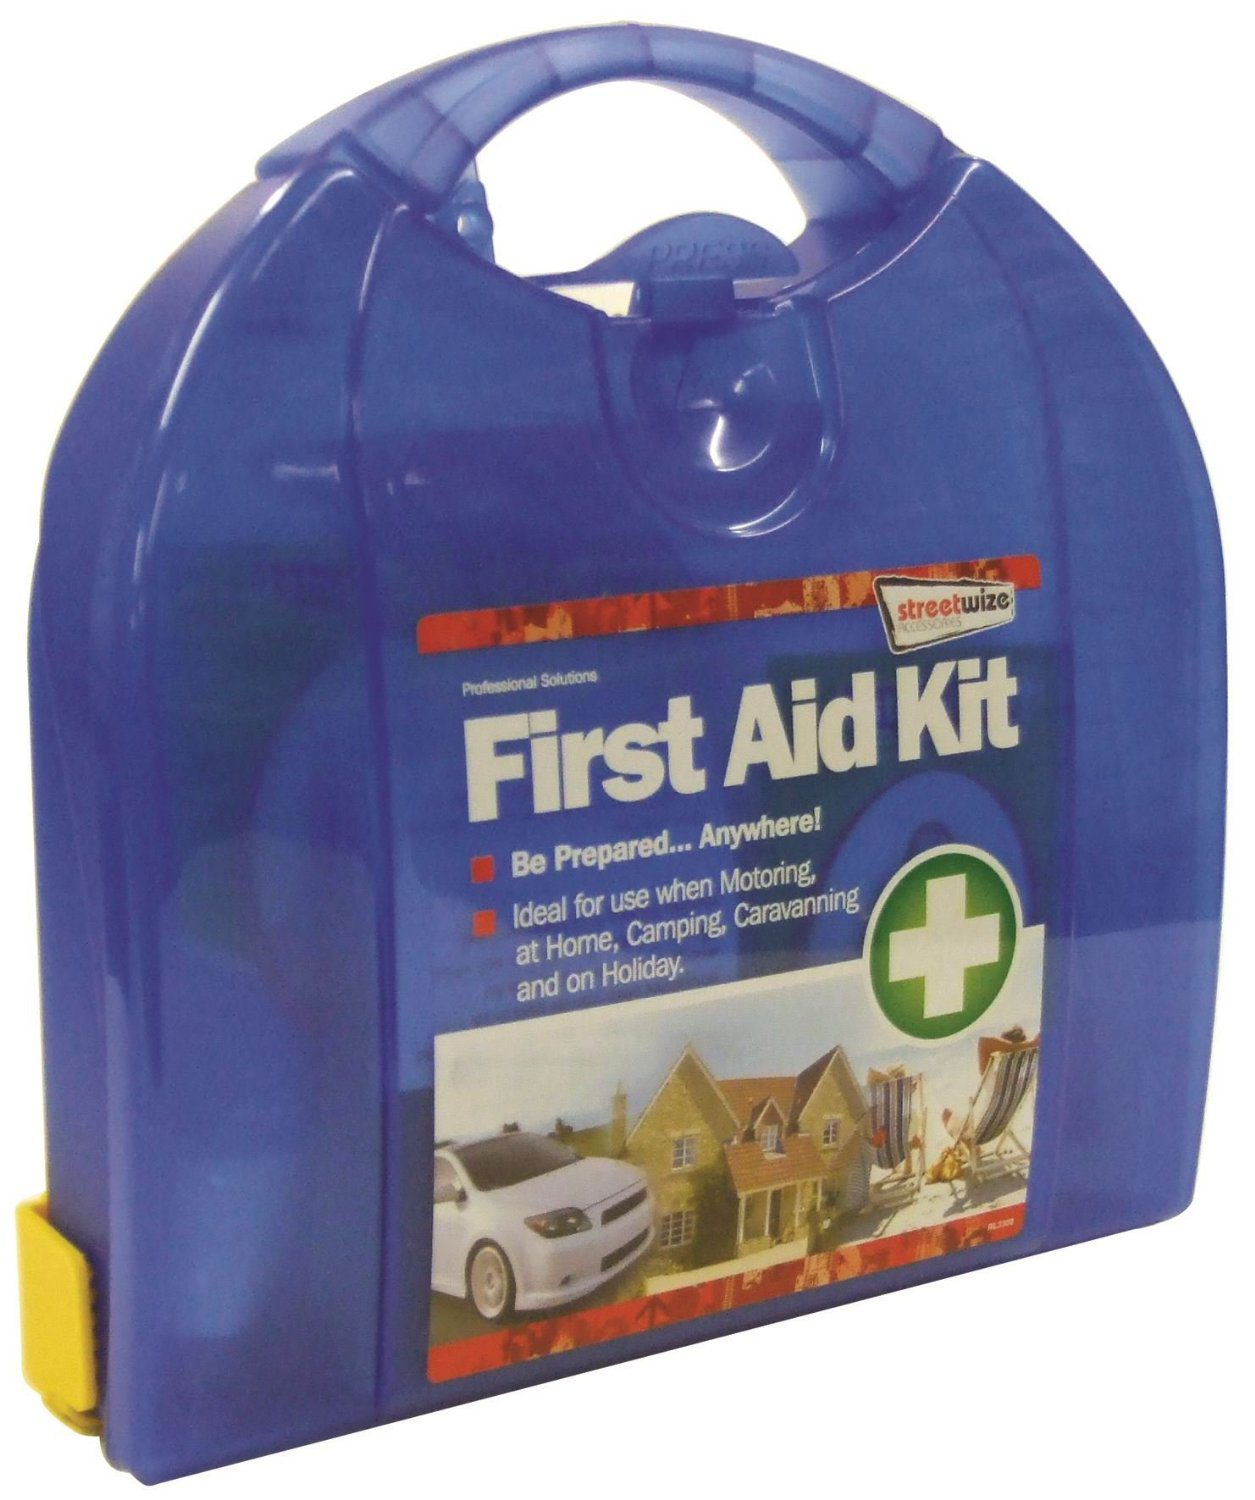 Streetwize FAK2 First Aid Kit Deluxe with Mounting Bracket